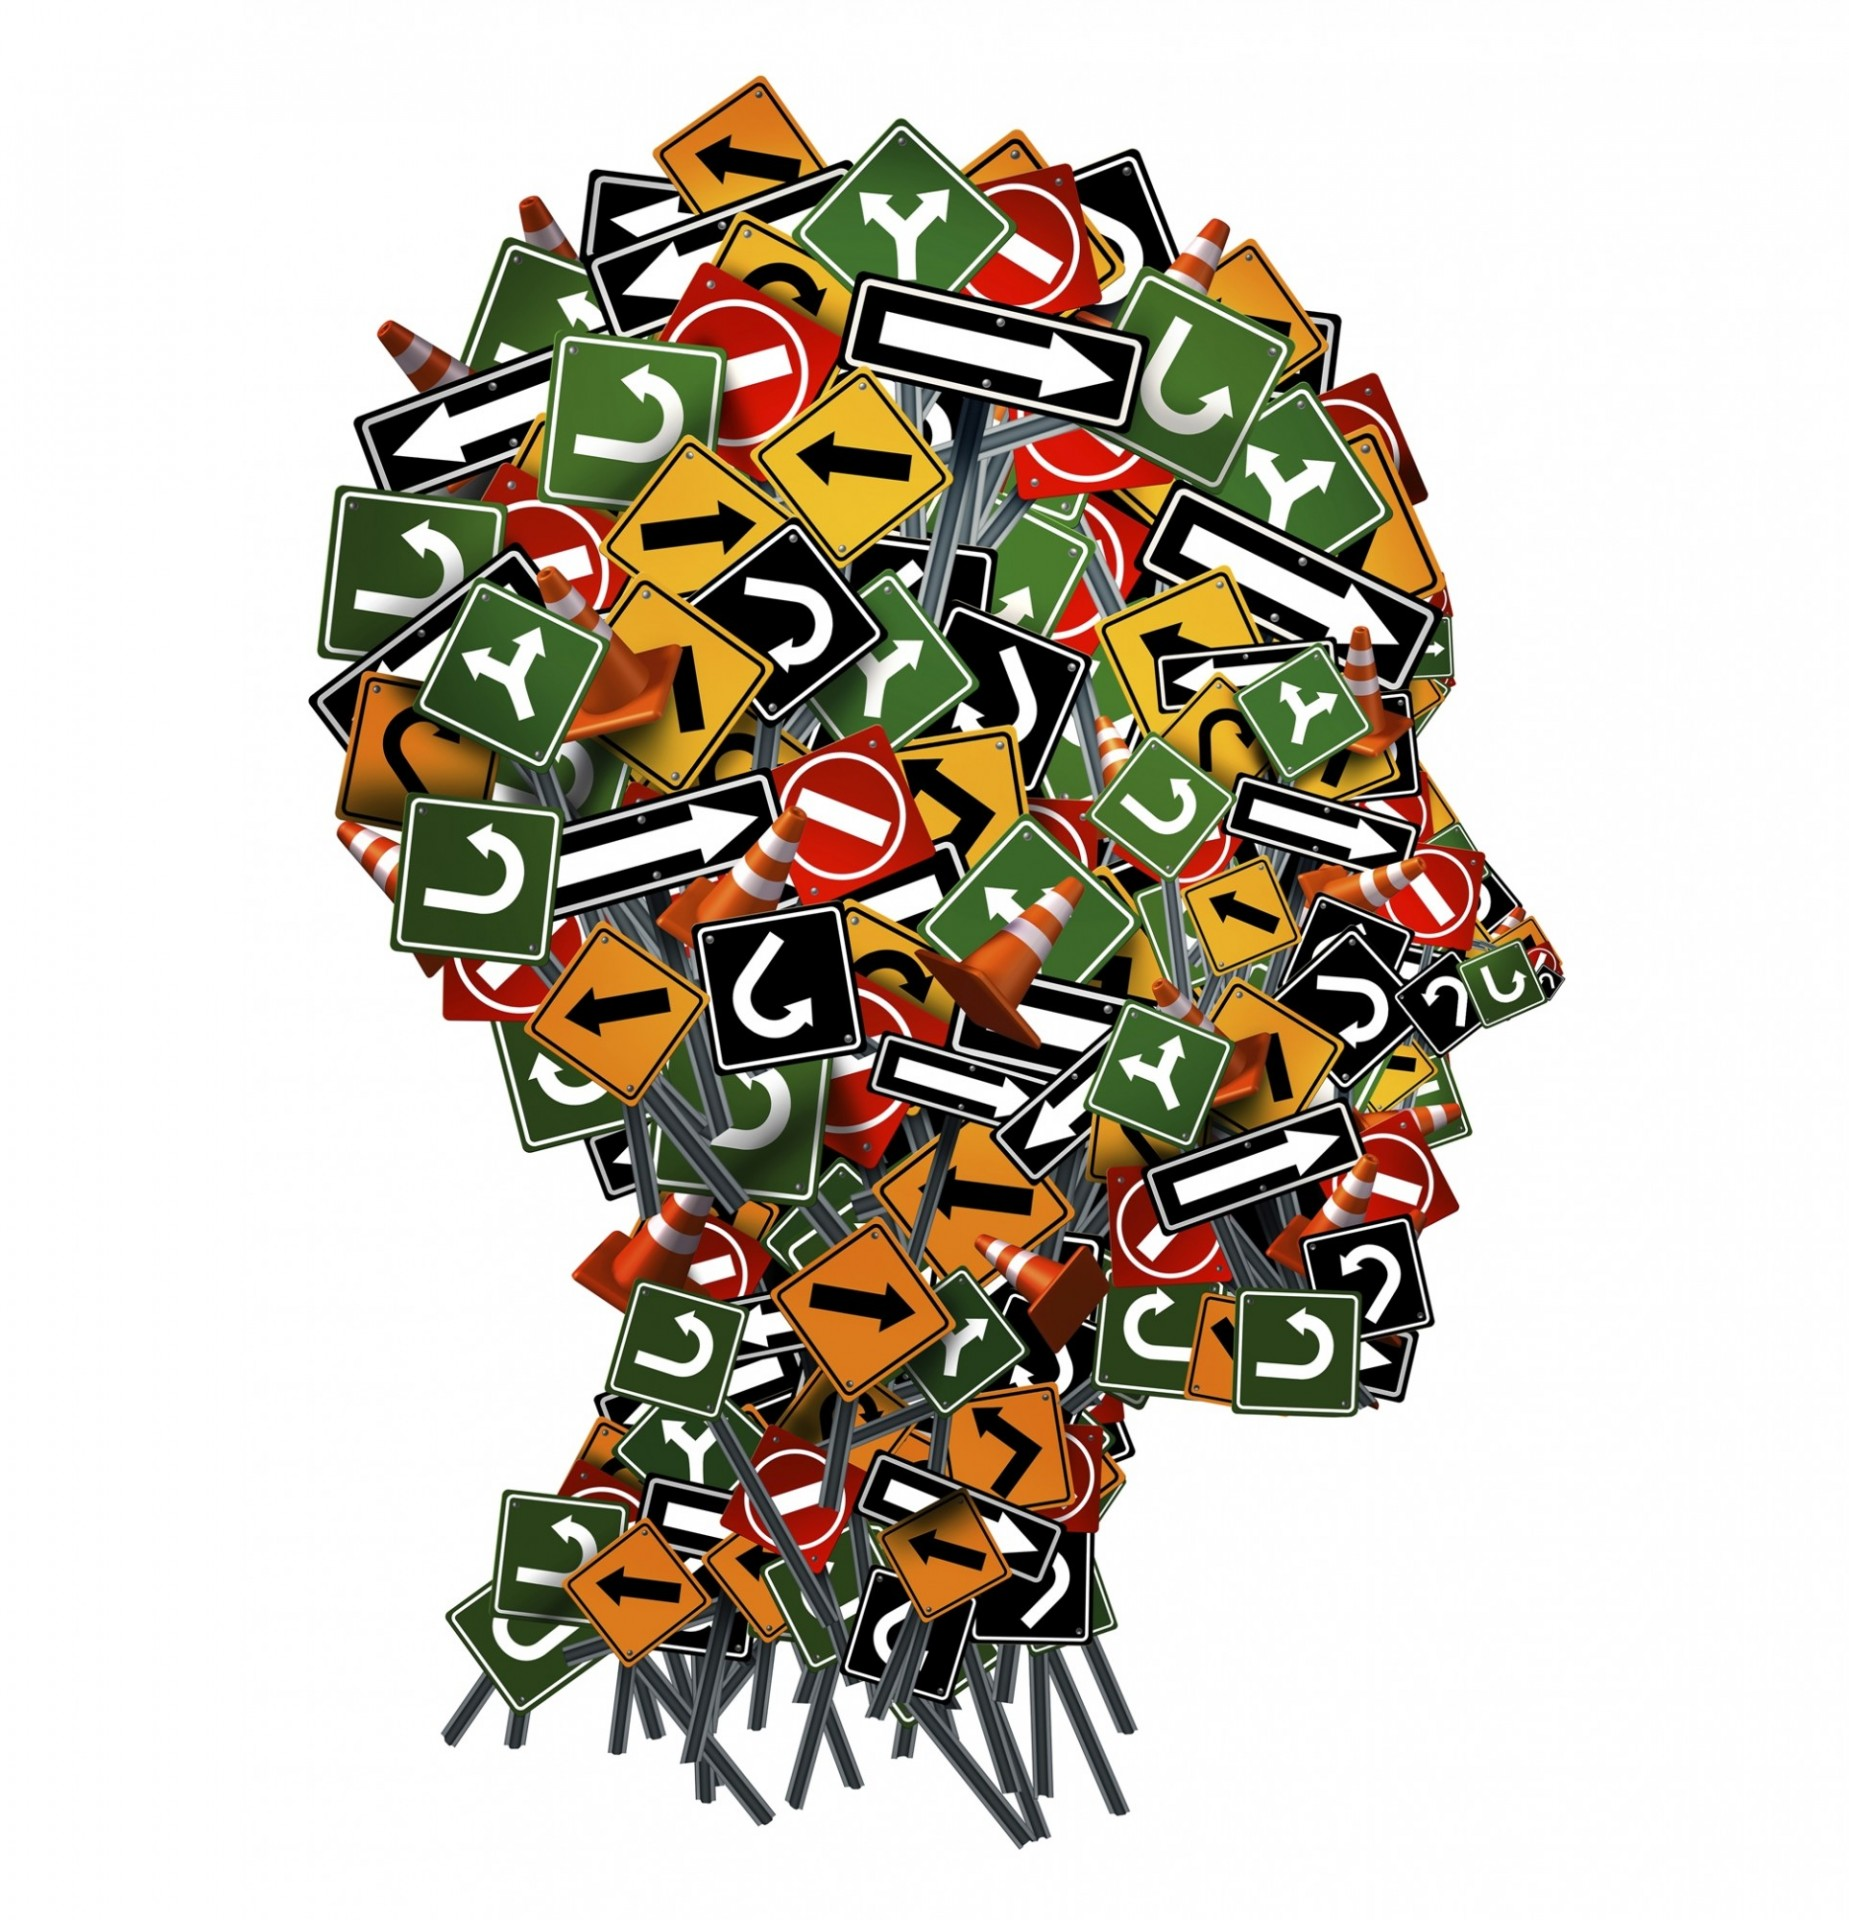 human face made up of traffic signs